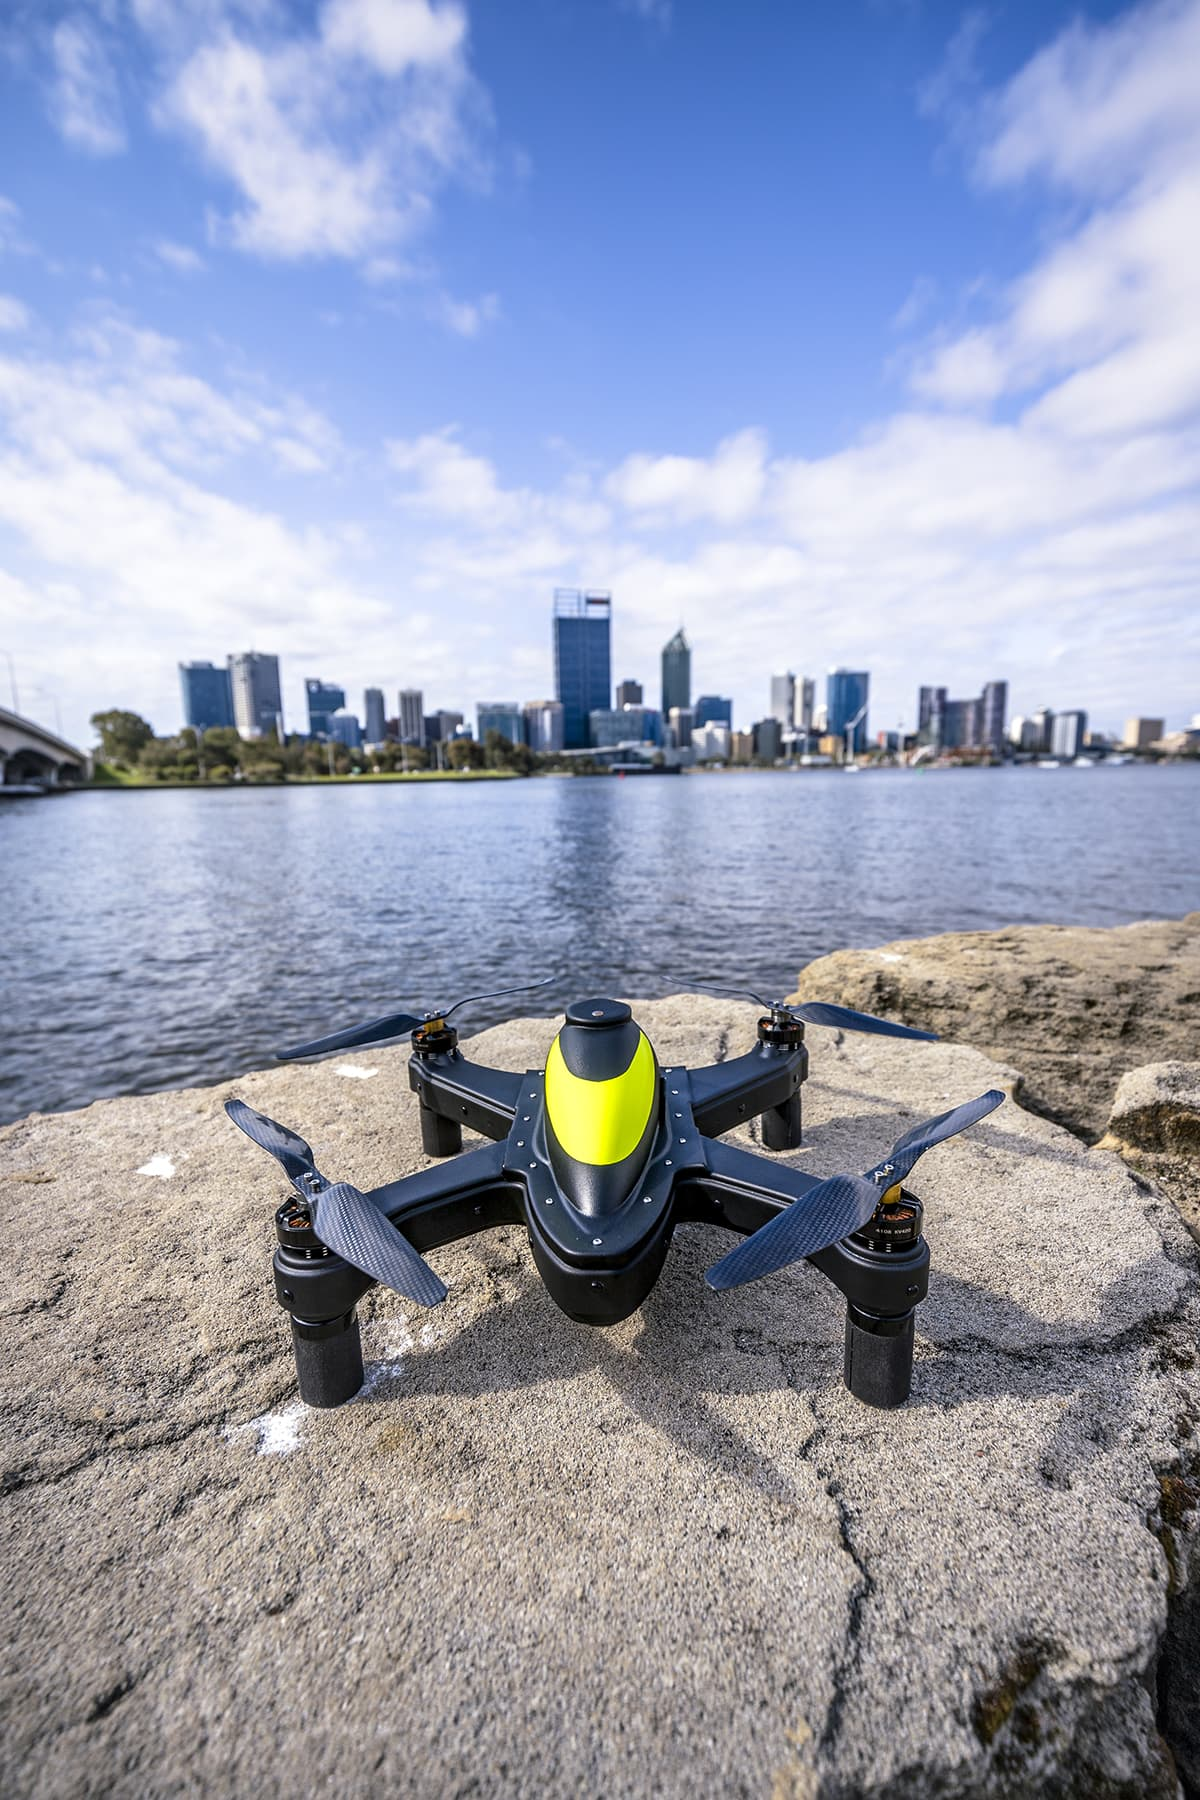 CutaCopter EX-1 Fishing Drone